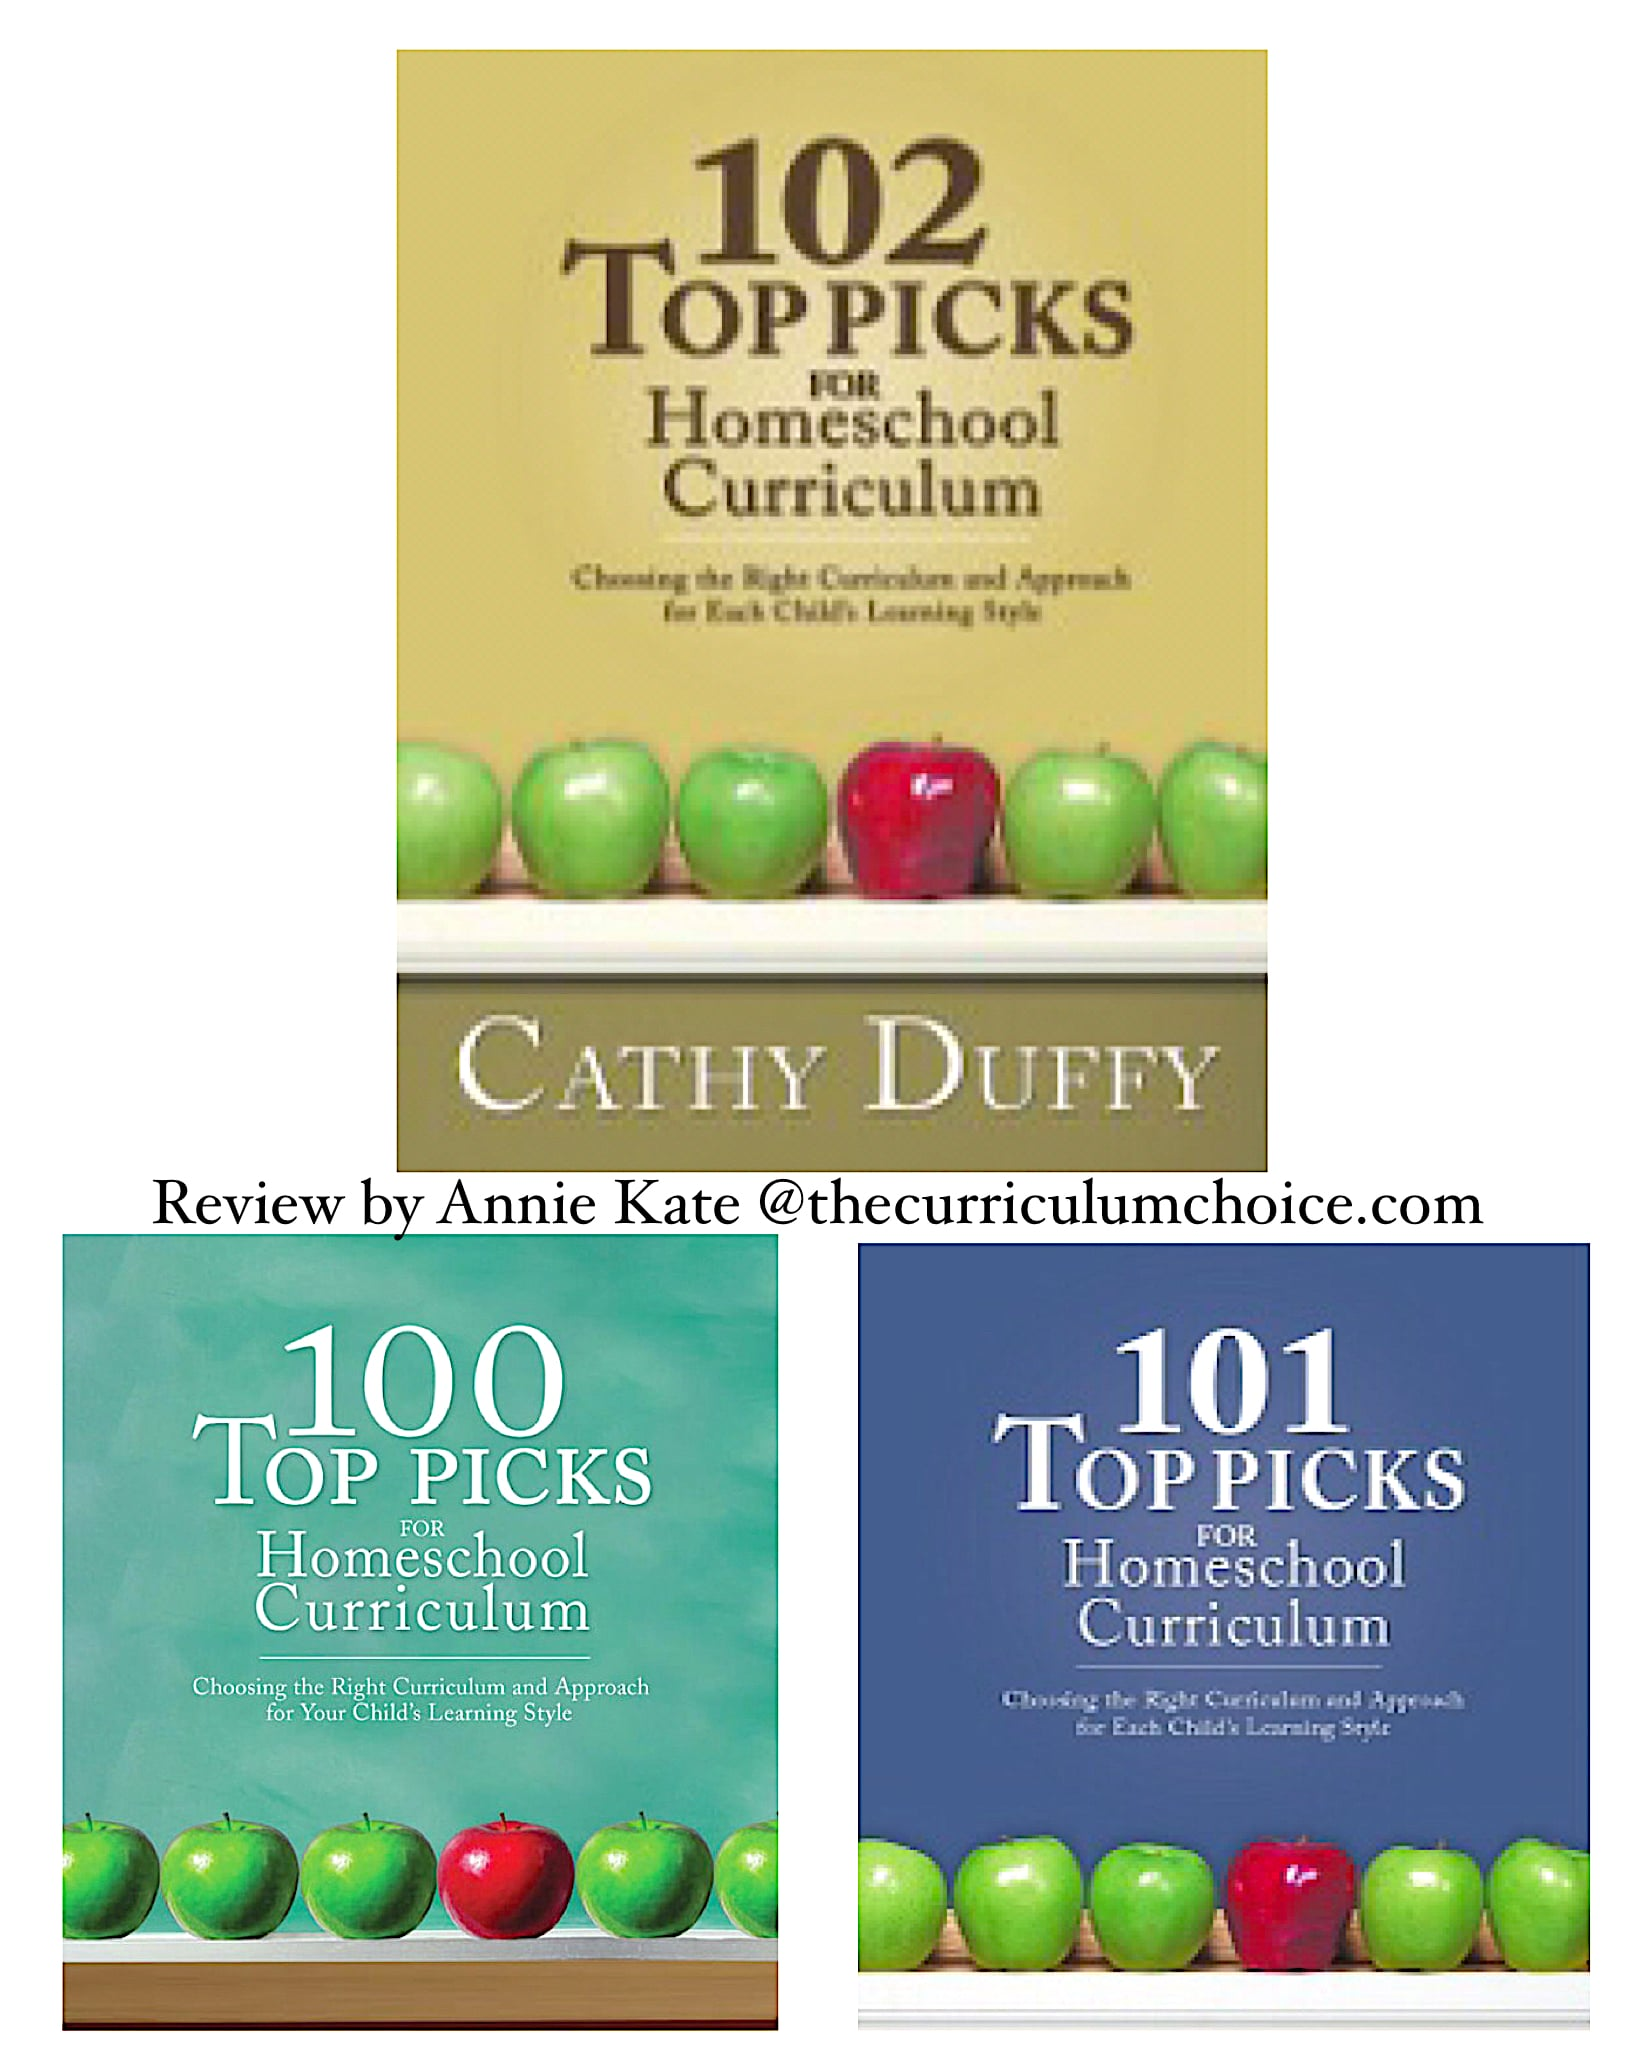 102 Top Picks for Homeschool Curriculum by Cathy Duffy - The Curriculum  Choice